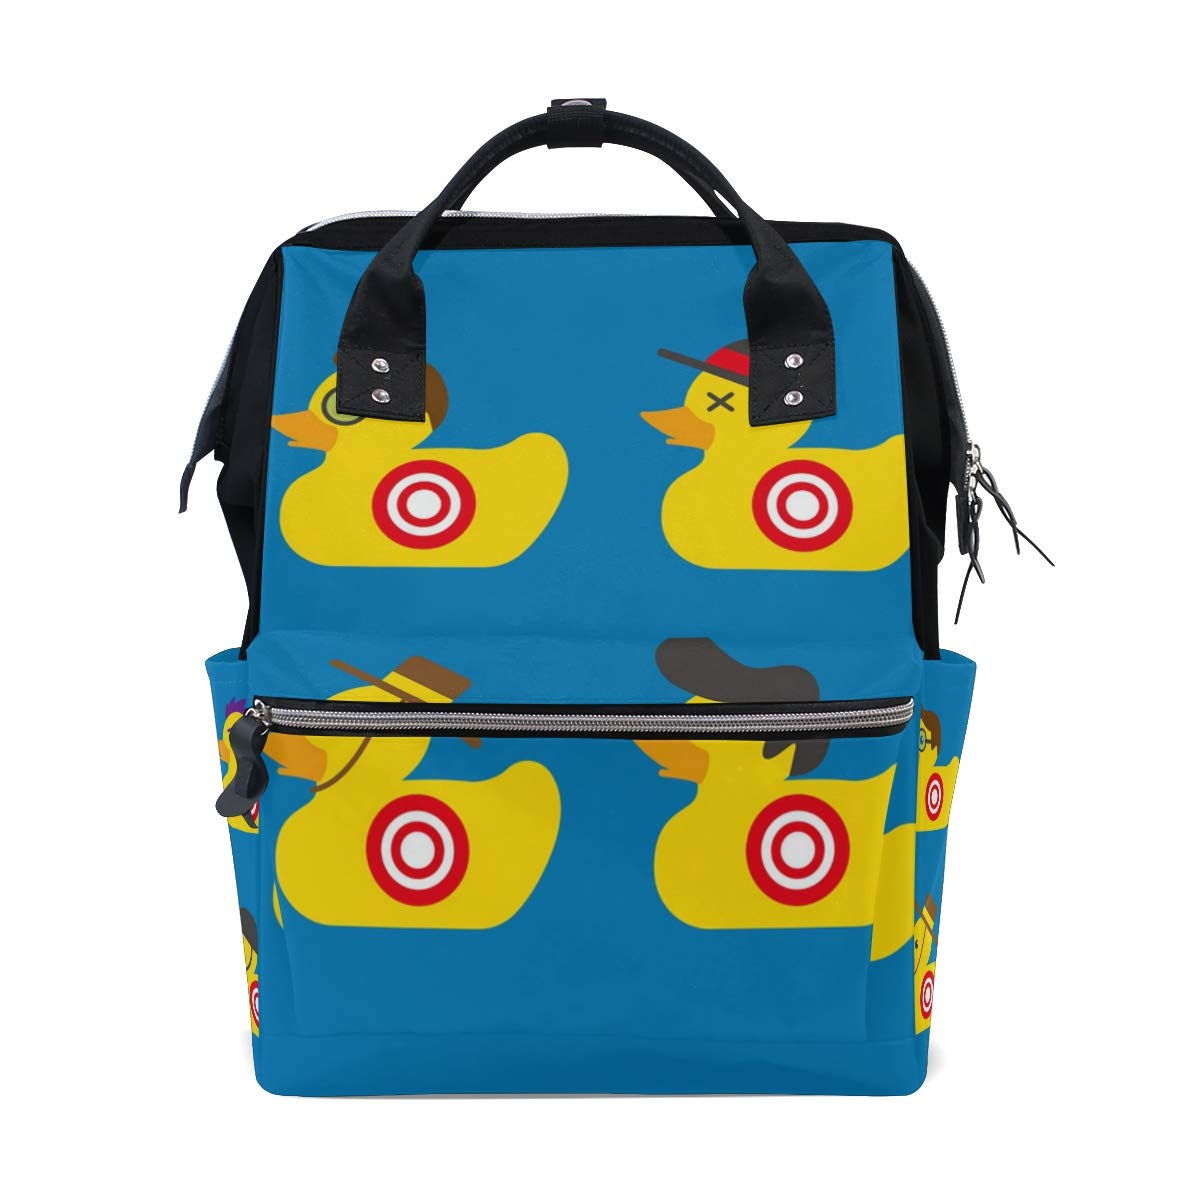 2dadb85a75 Amazon.com   LALATOP Diaper Bag Backpack for mom Rubber Duck Target Larger  Capacity Baby Nappy Bag Muti-Function Travel Backpack   Baby